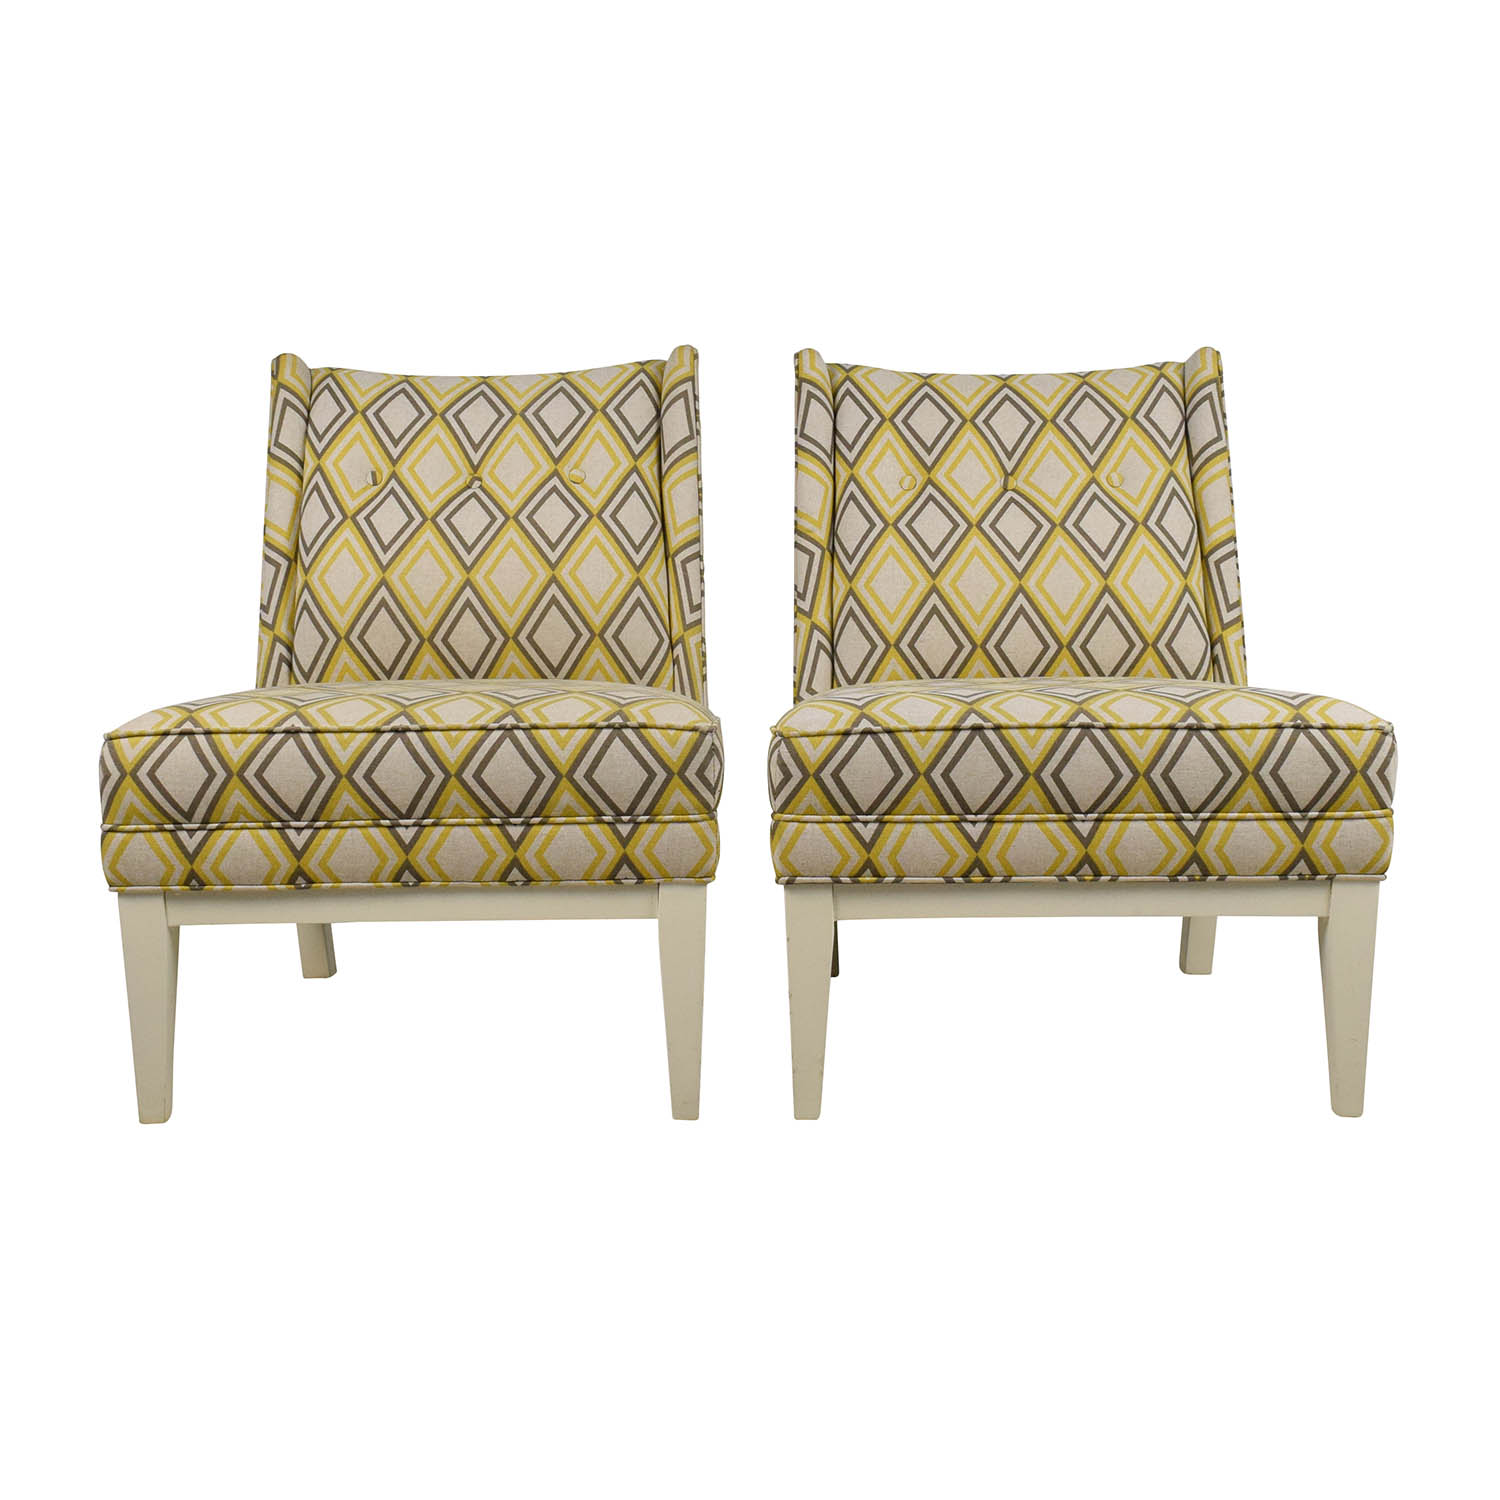 Super 84 Off Jonathan Adler Jonathan Adler Morrow Yellow And Gray Chair Pair Chairs Machost Co Dining Chair Design Ideas Machostcouk